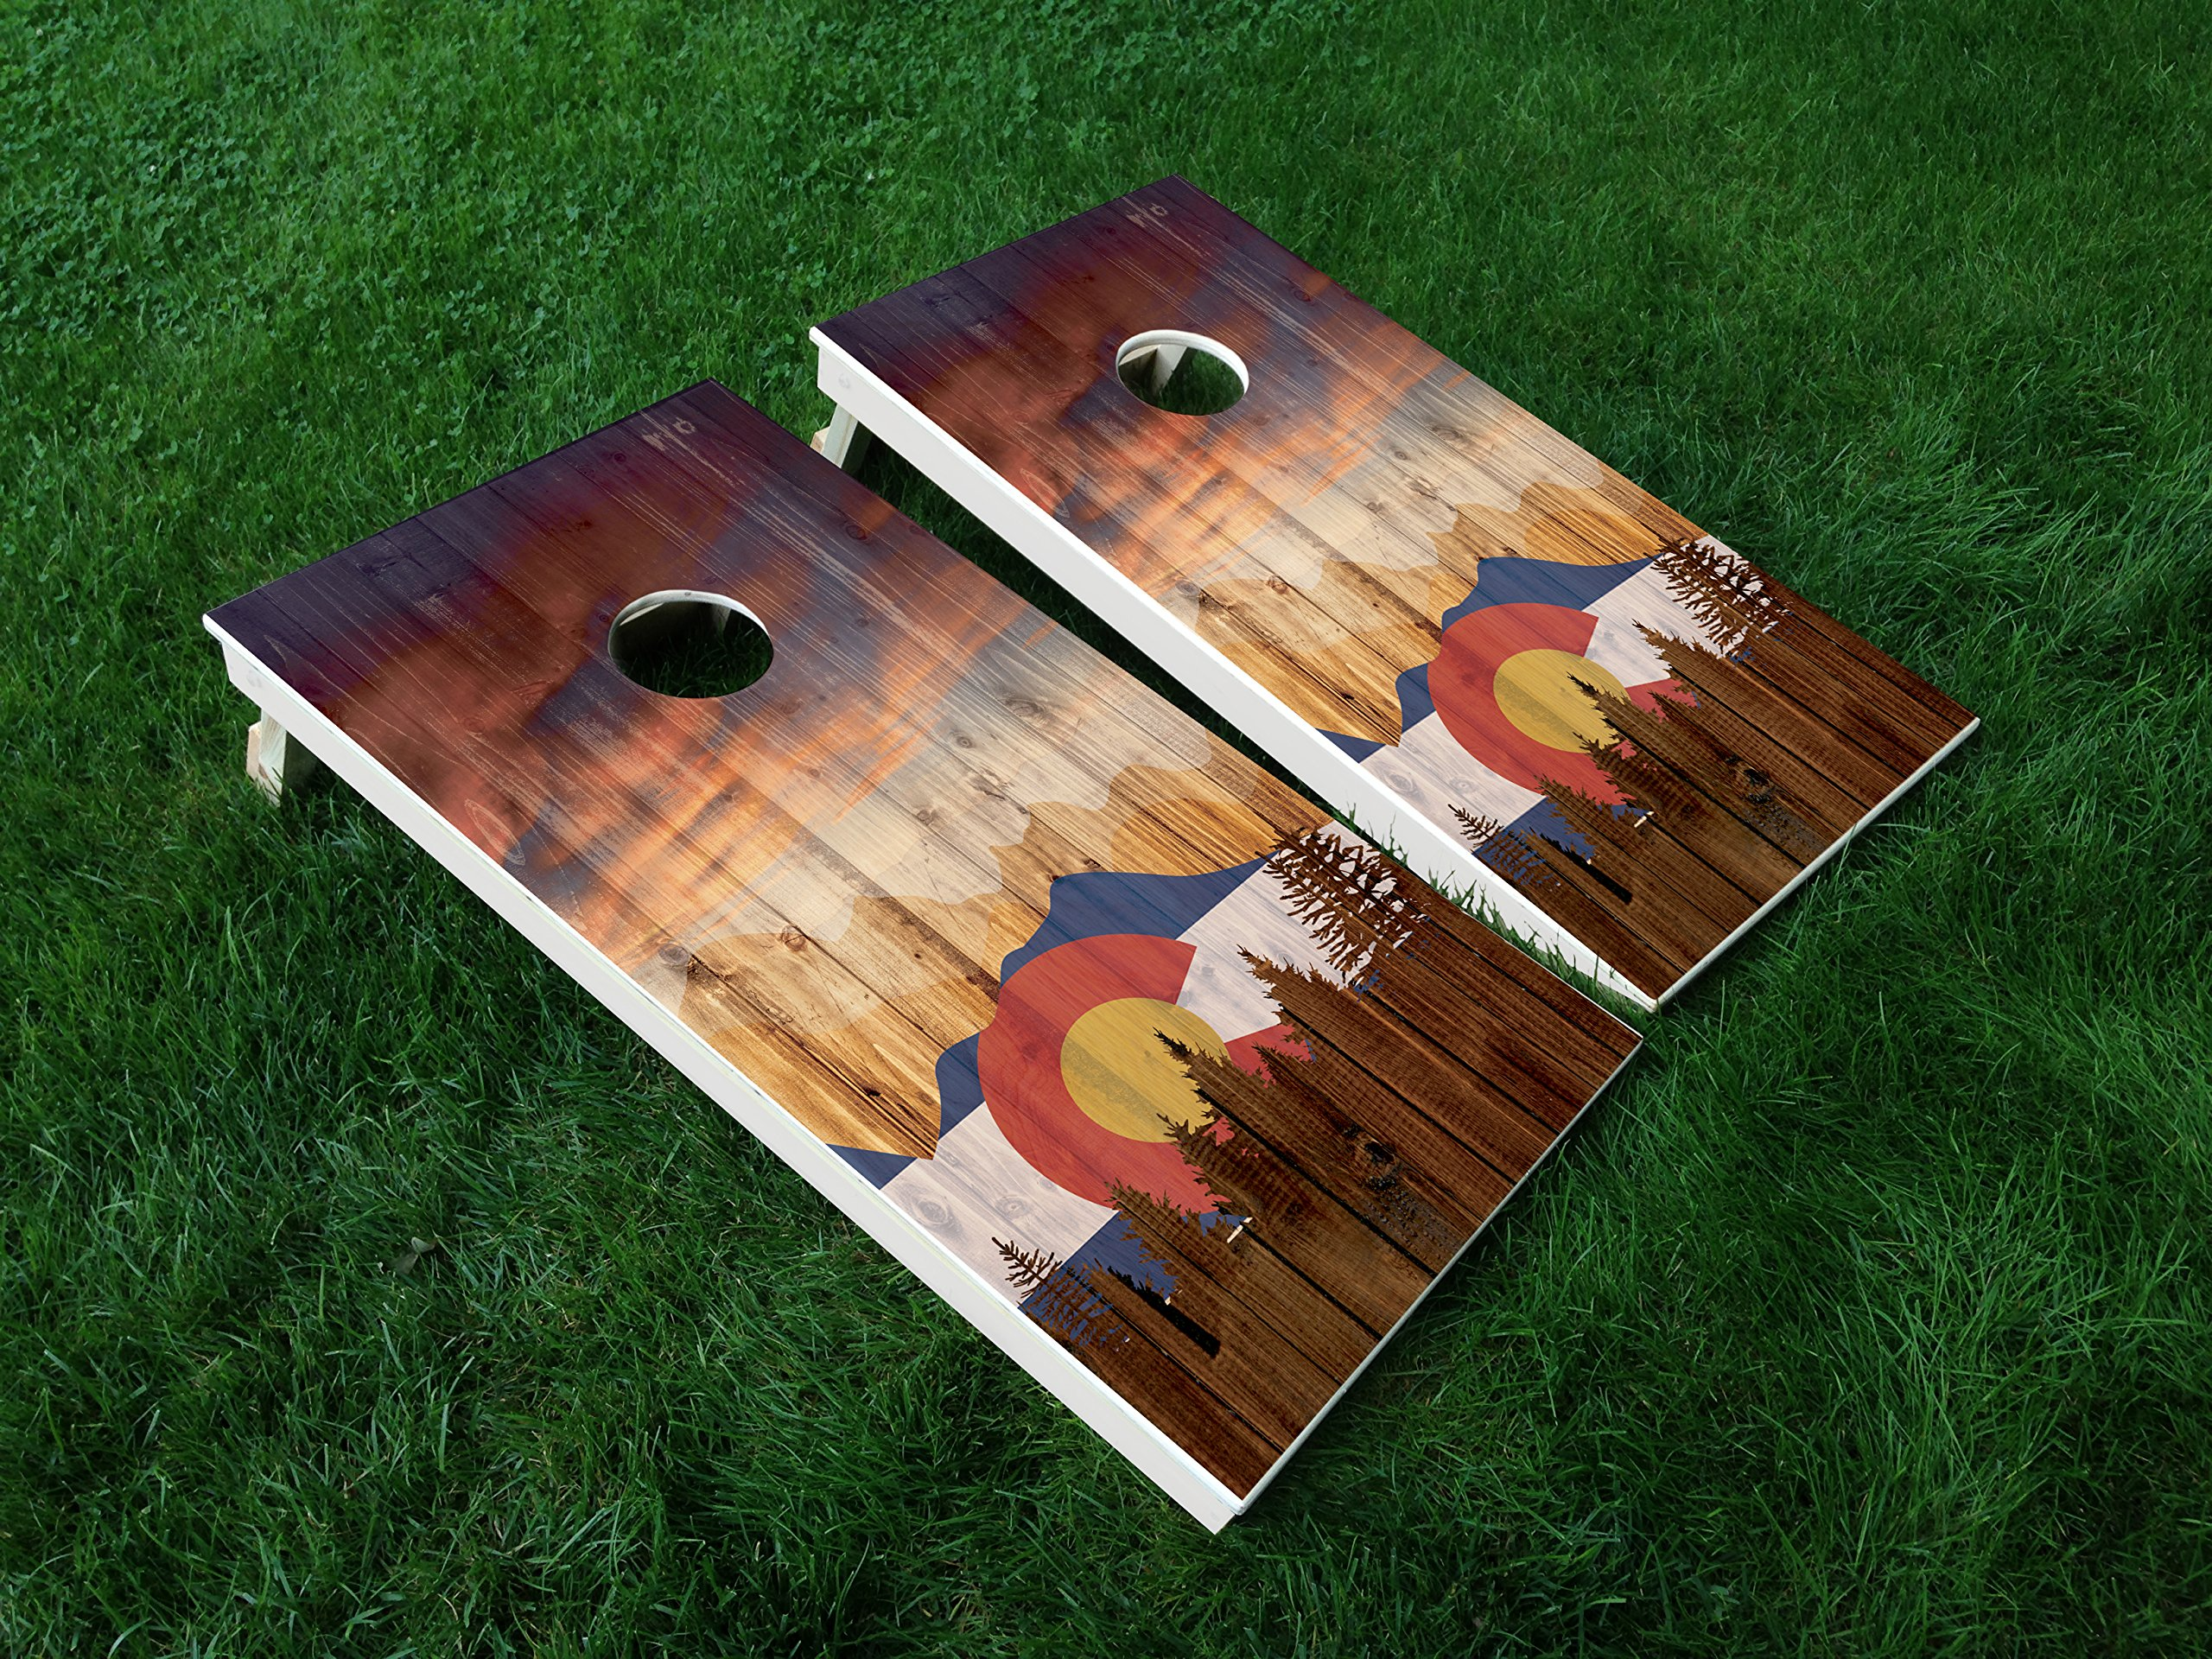 DISTRESSED Colorado 06 Colorado State FLAG CORNHOLE WRAP SET Vinyl Board DECAL Baggo Bag Toss Boards MADE IN the USA